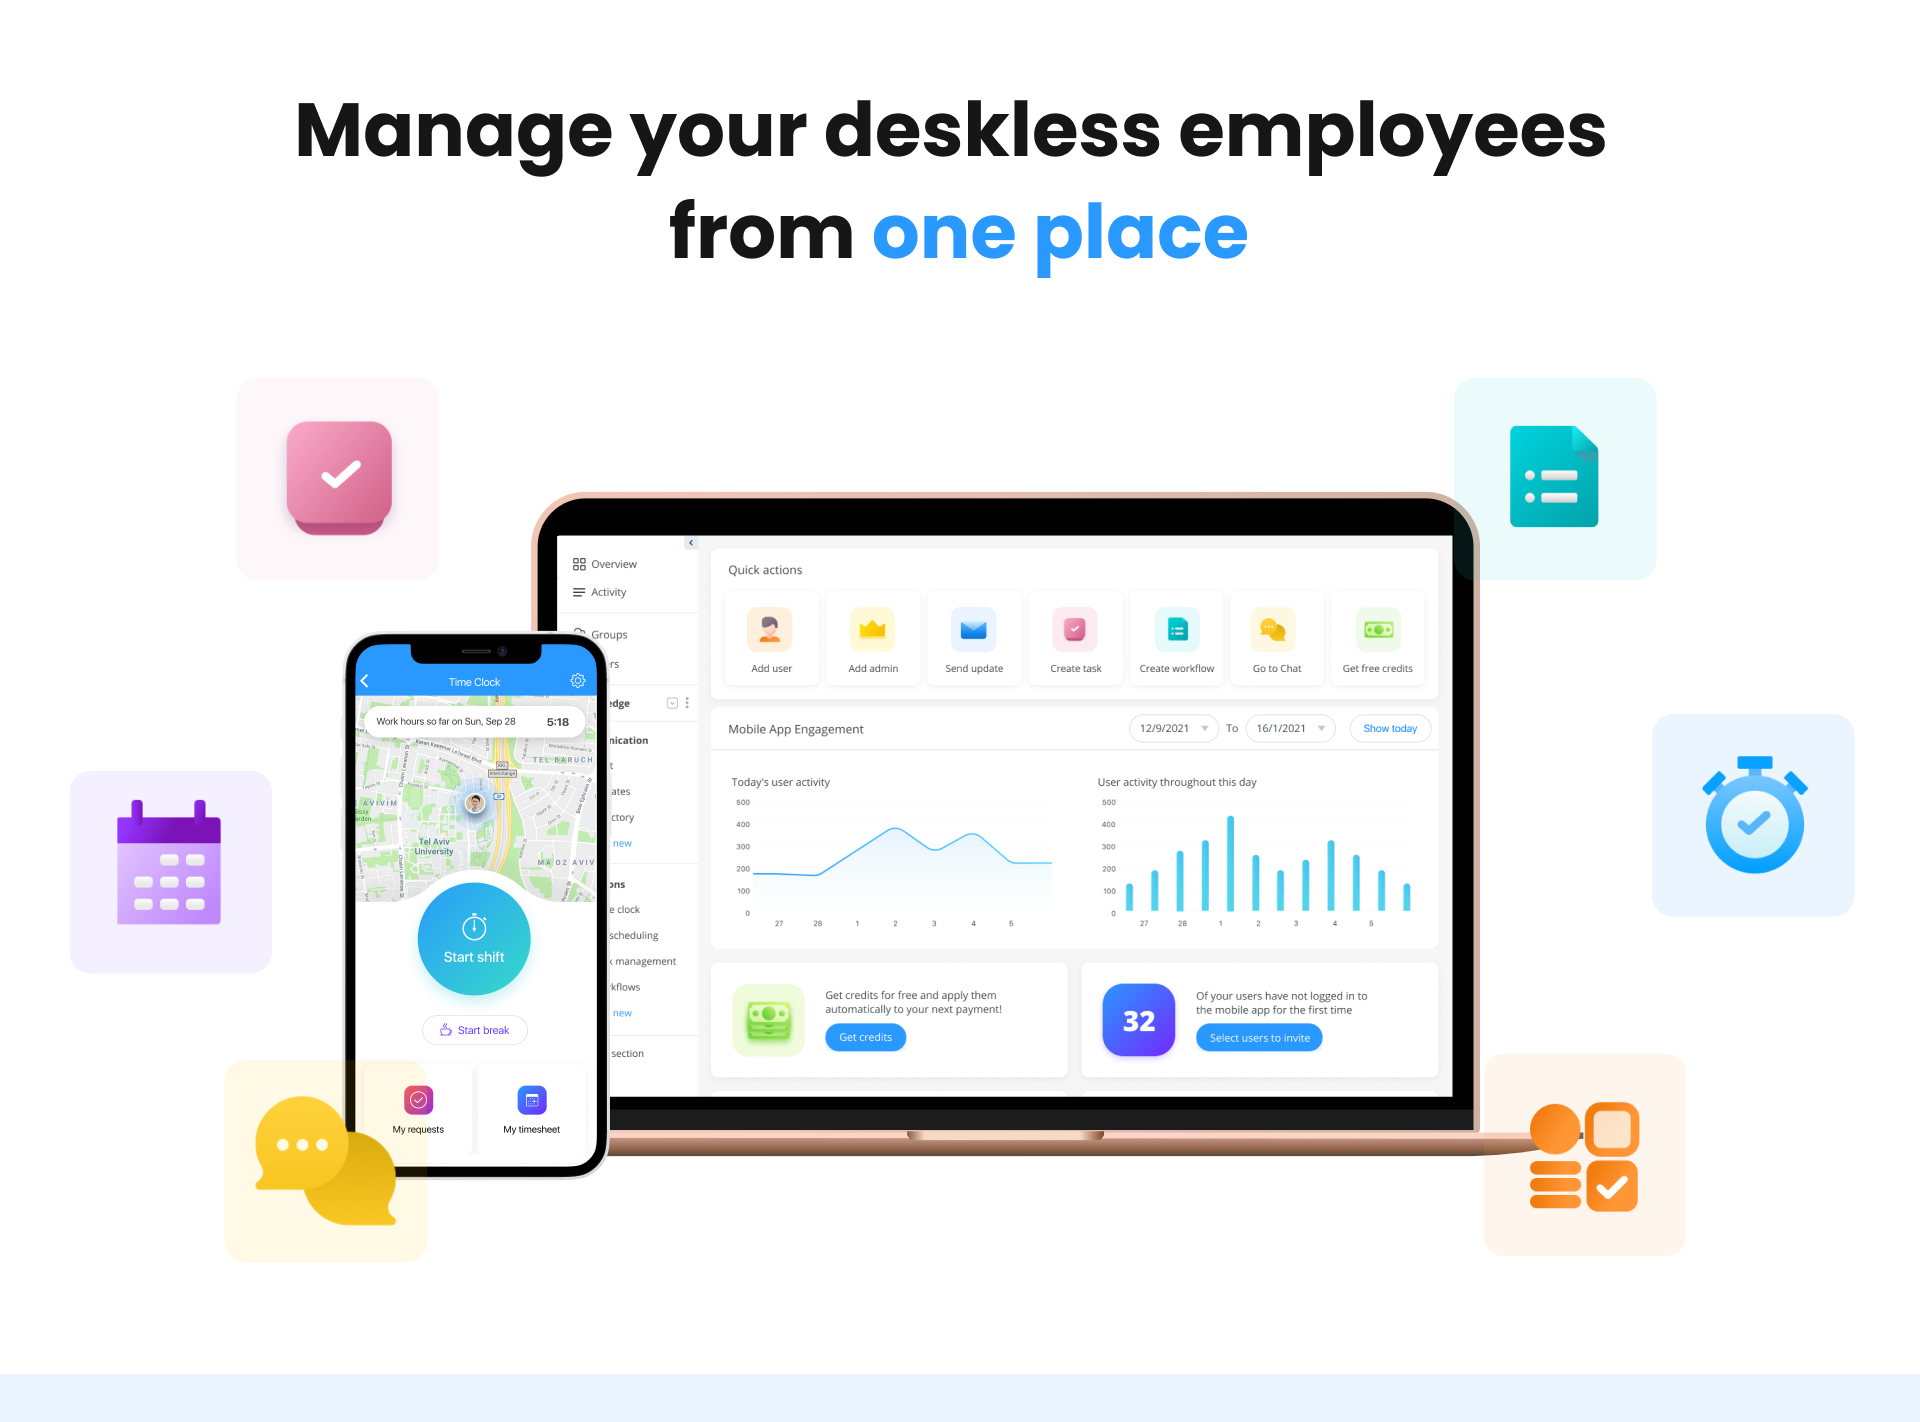 Connecteam Software - Manage your deskless employees from one place